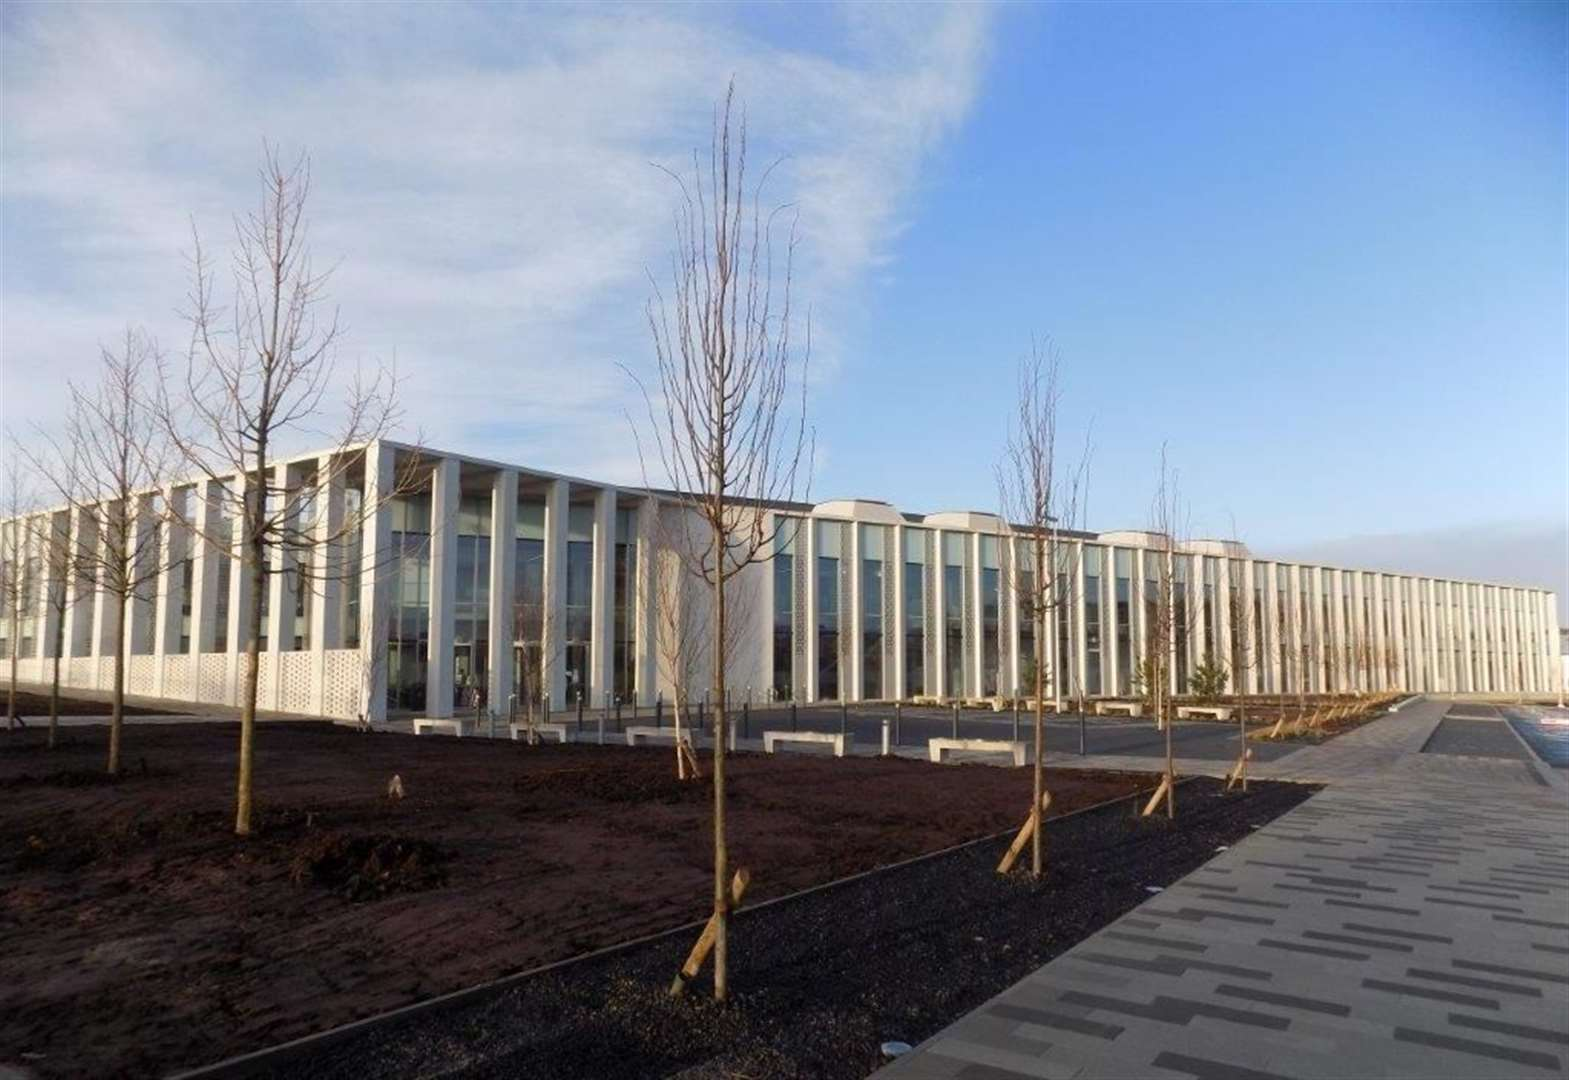 See inside the Inverness Justice Centre which opened today